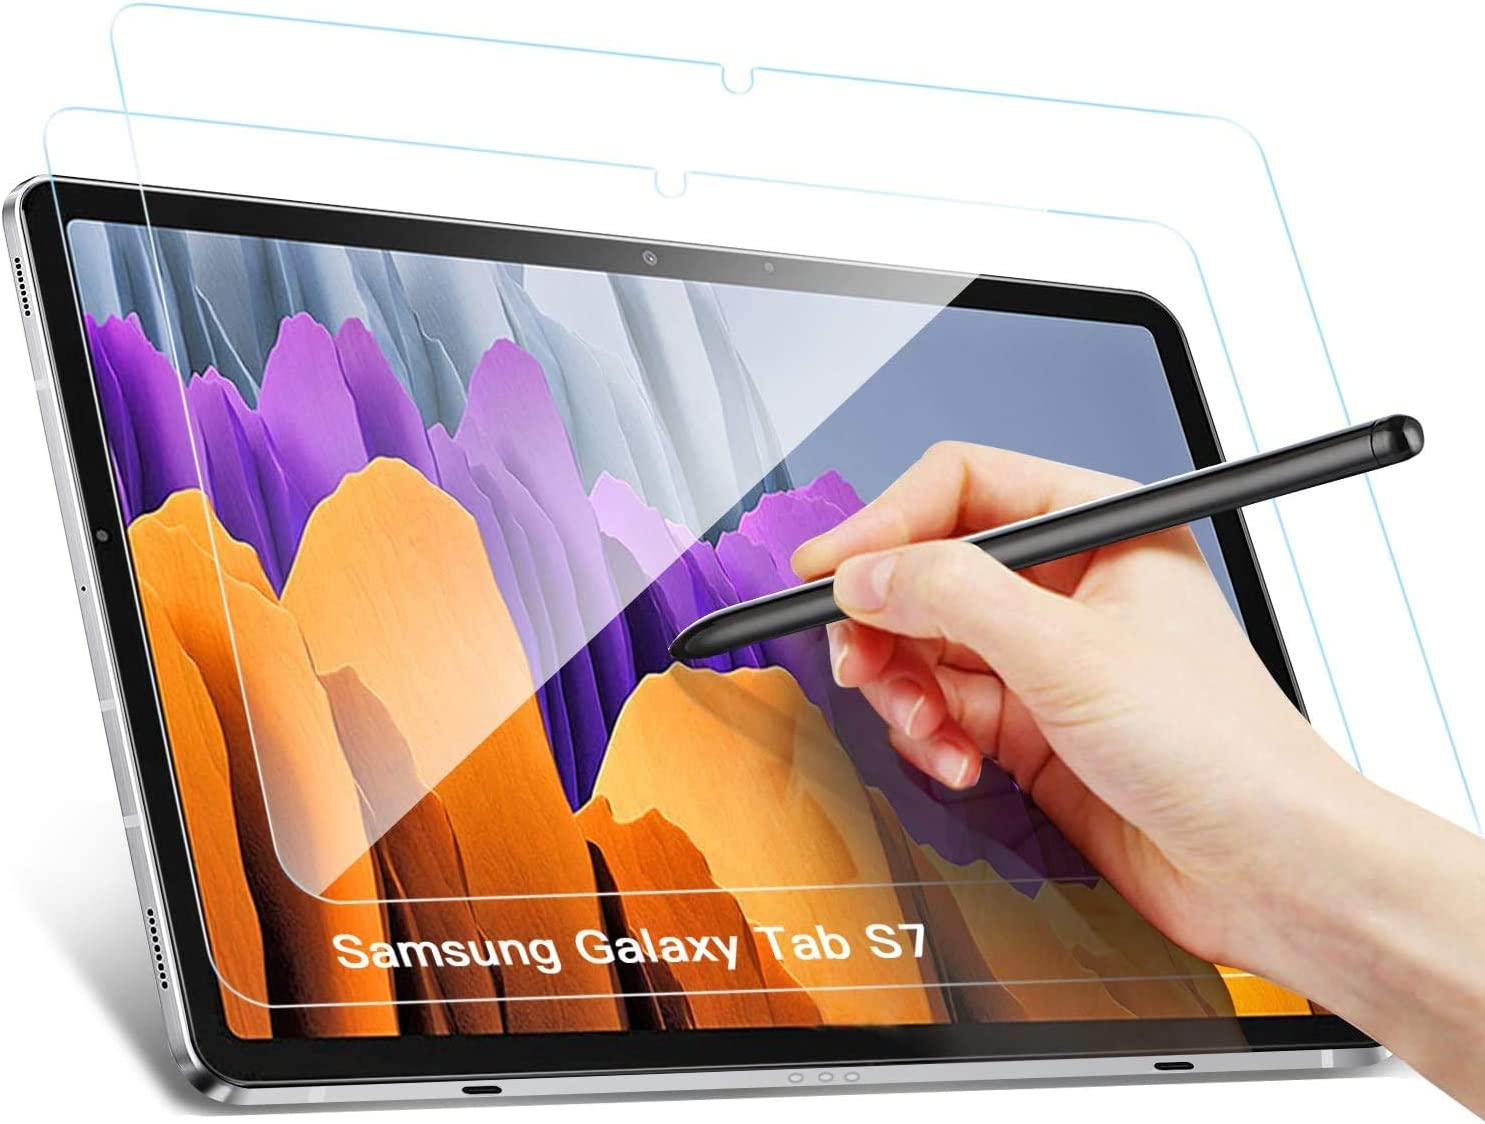 Benazcap Samsung Galaxy Tab S7 Screen Protector Rounded Corners 2 5d 9h Hardness Tempered Screen Protector Glass Tempered Glass For Samsung Galaxy Tab S7 11 Inch 2020 Pack Of 2 Elektronik